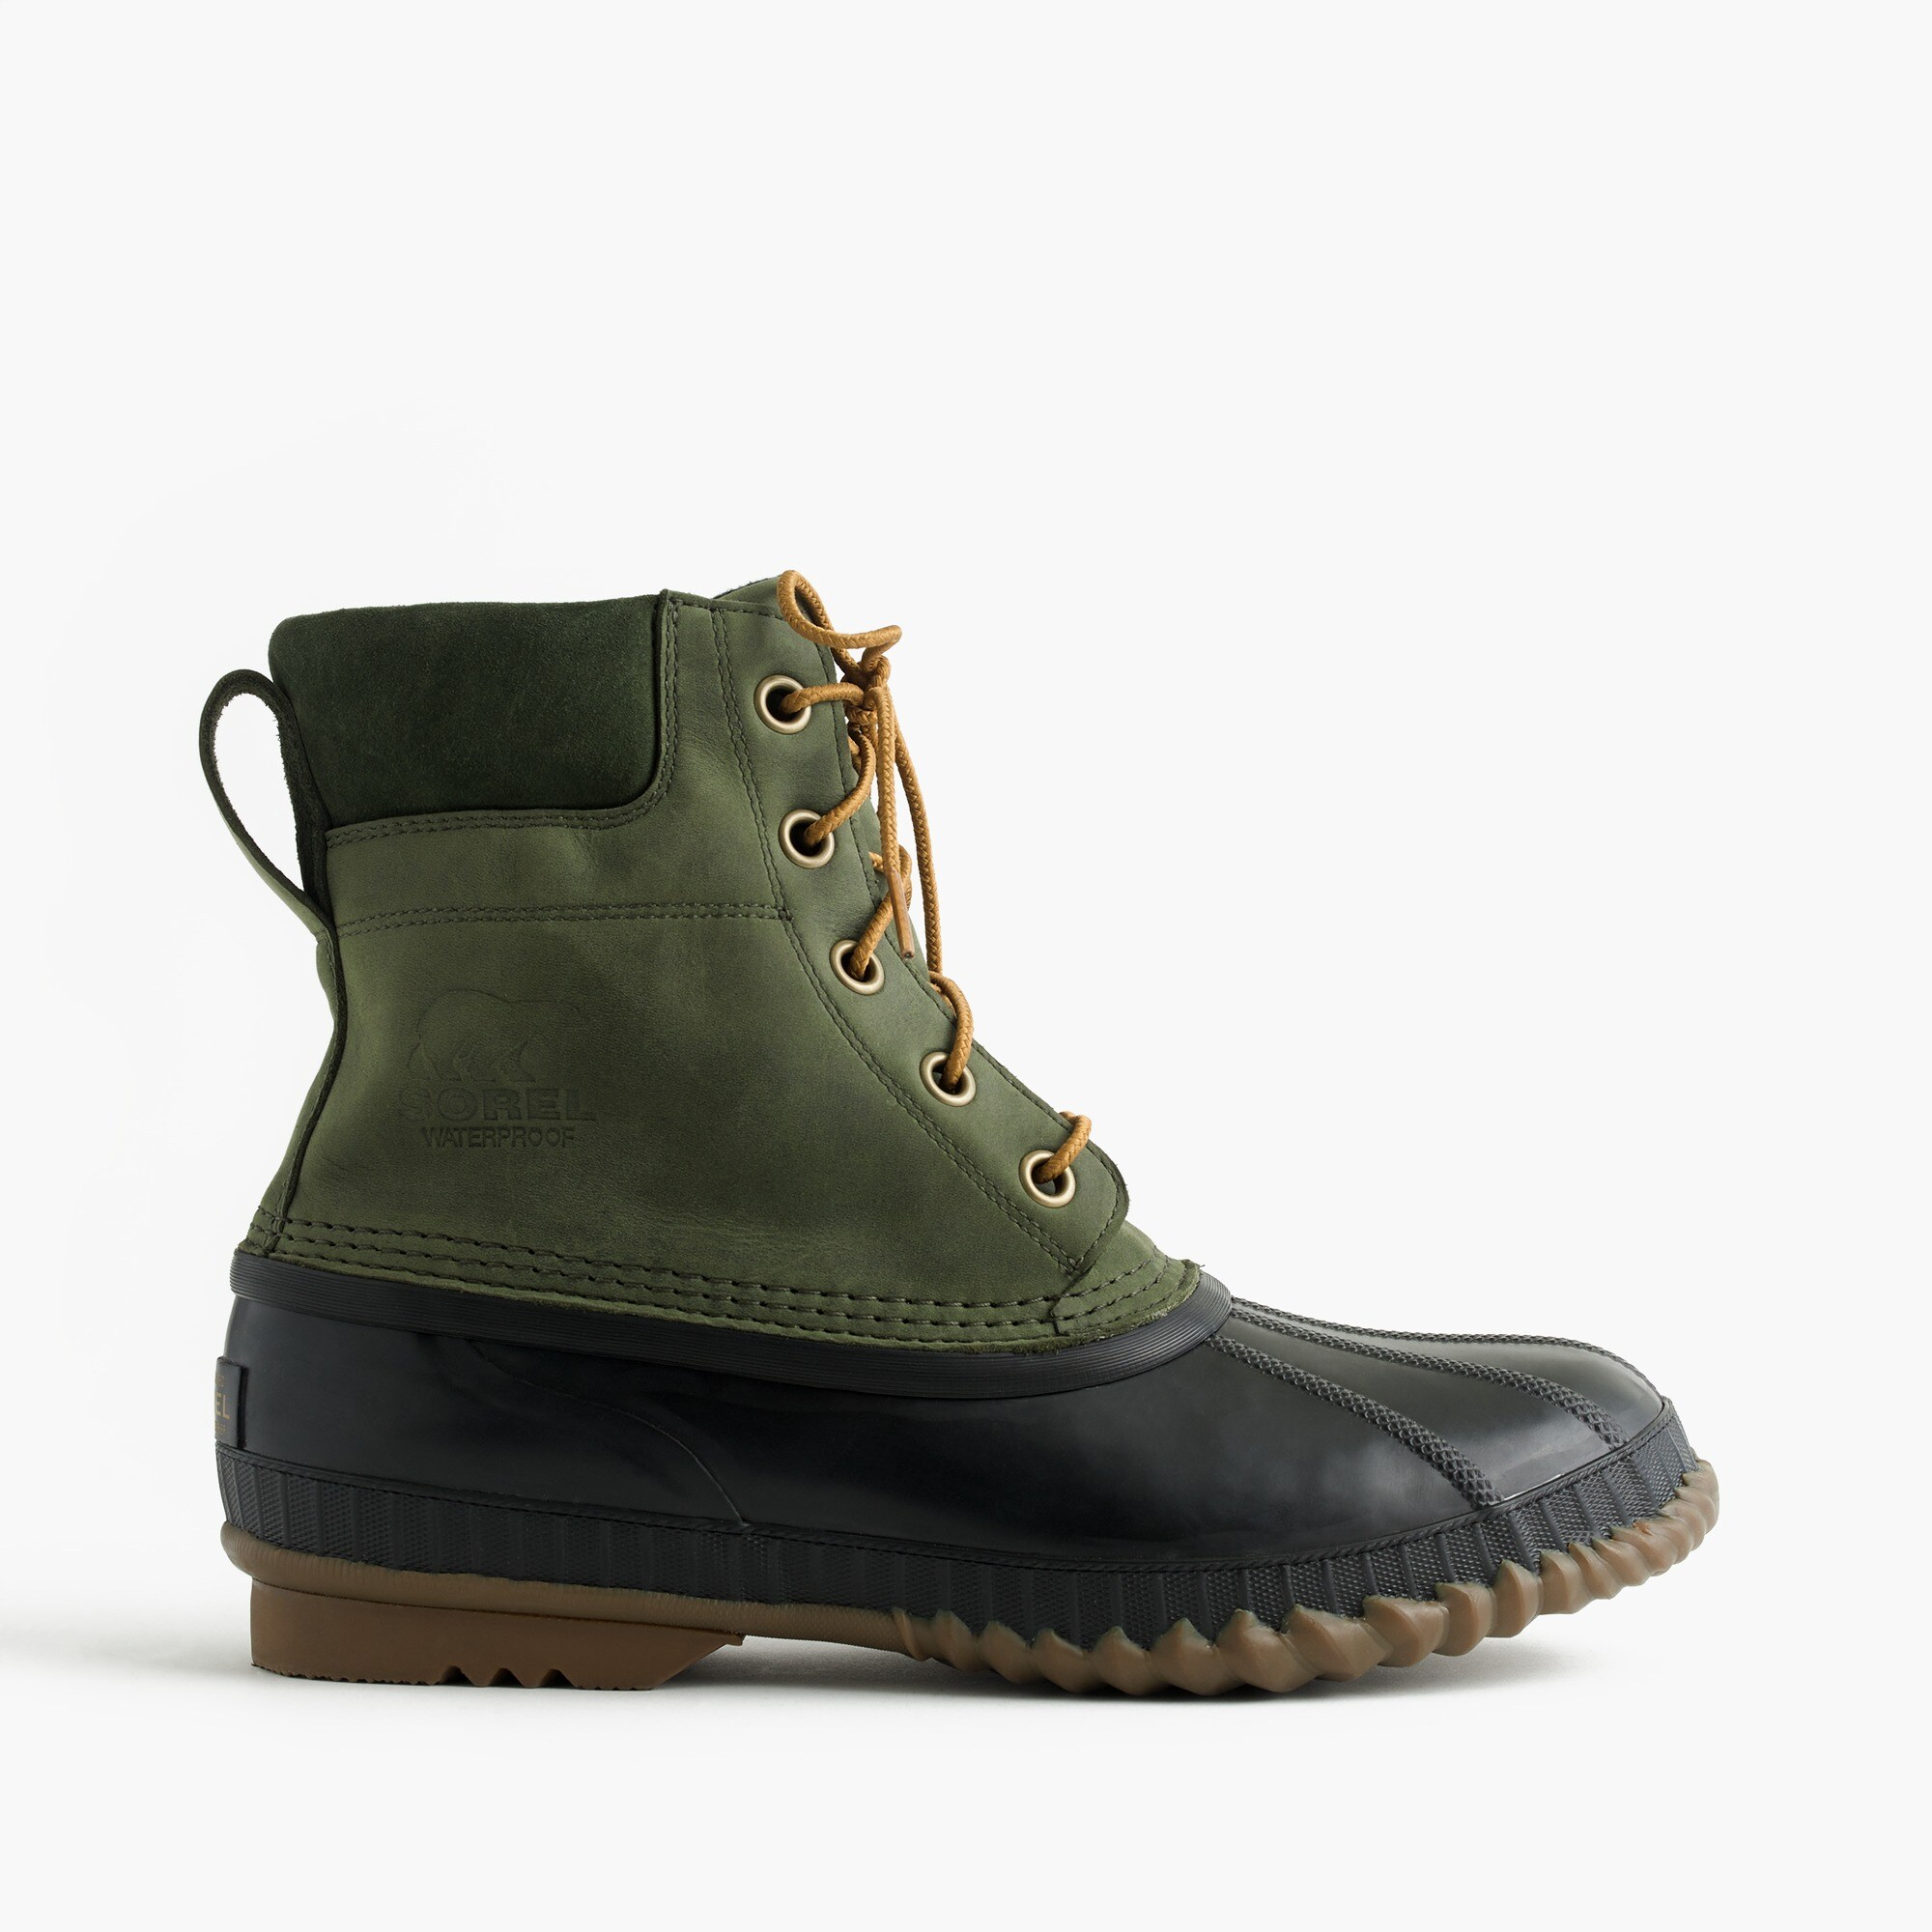 Sorel® for J.Crew Cheyanne™ boots in pine men j.crew in good company c